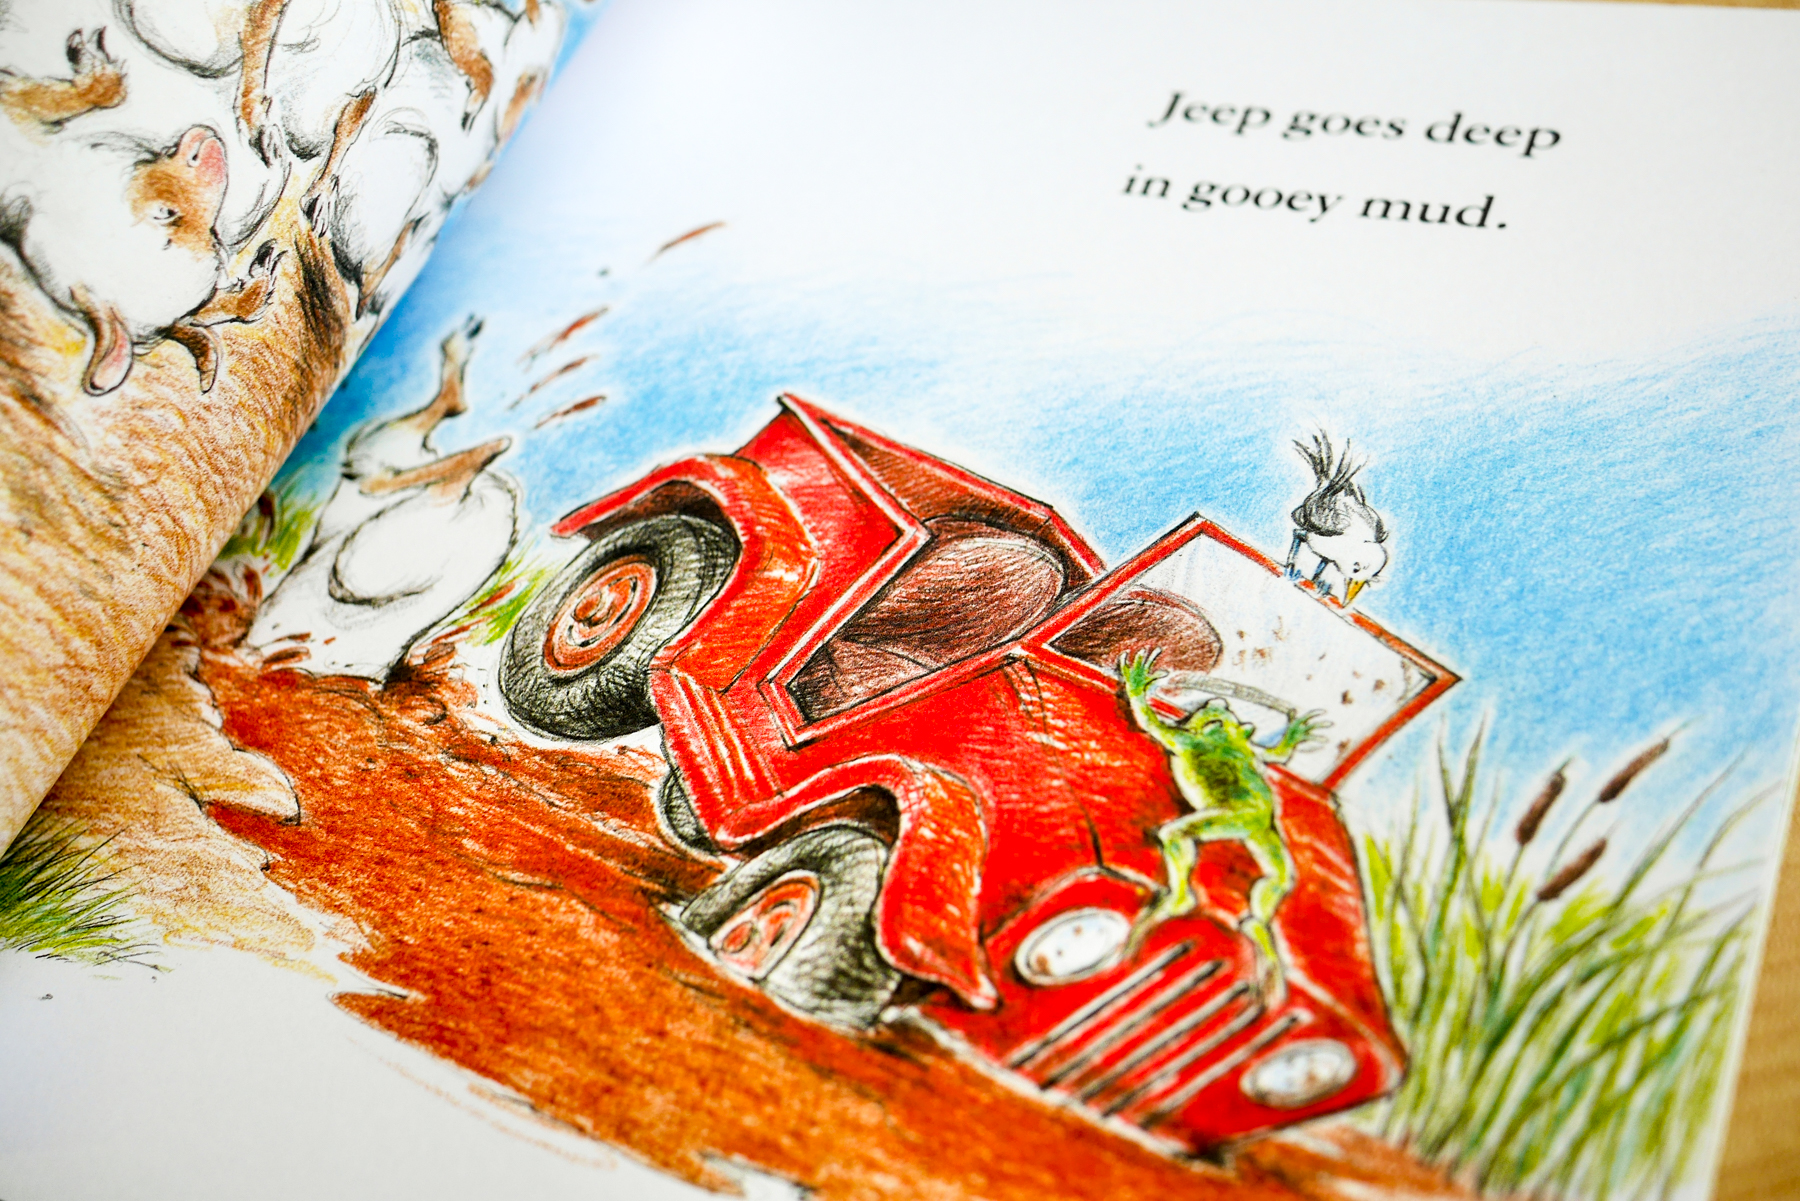 Jeep Goes Deep In Gooey Mud - Read Aloud Books